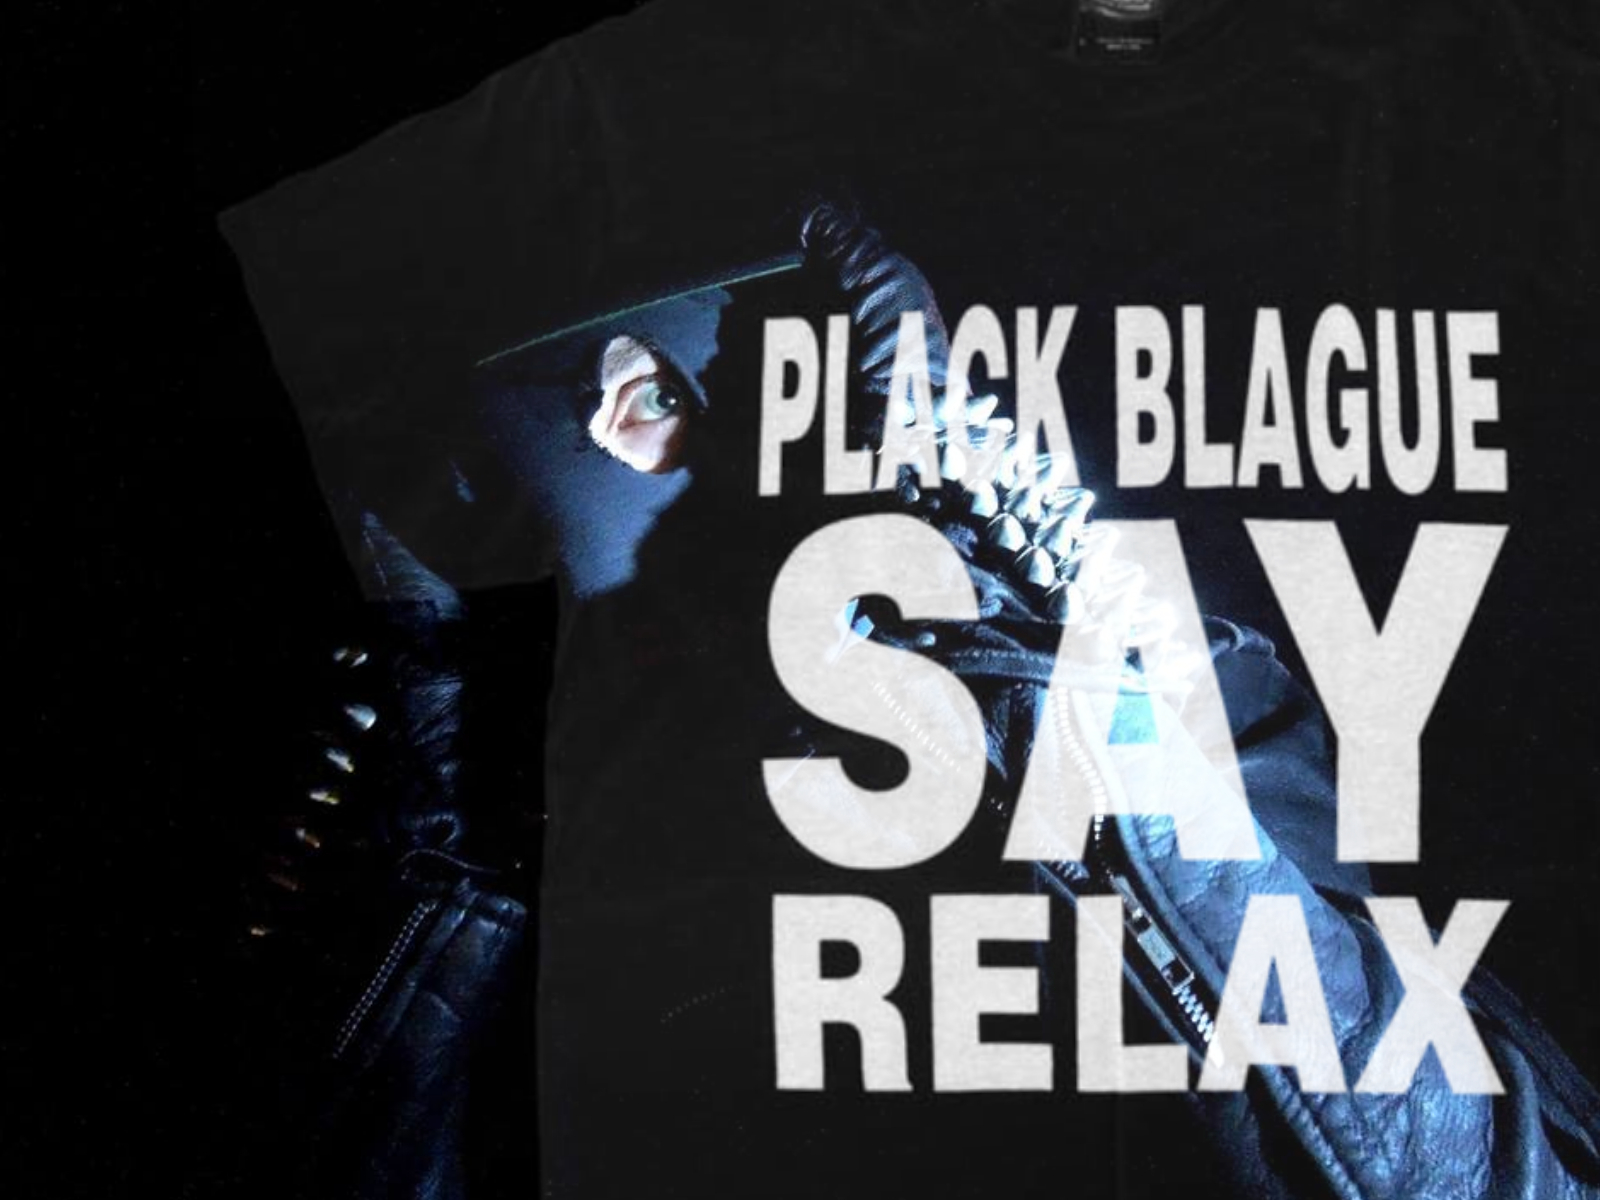 PLACK BLAGUE SAY RELAX T-SHIRT